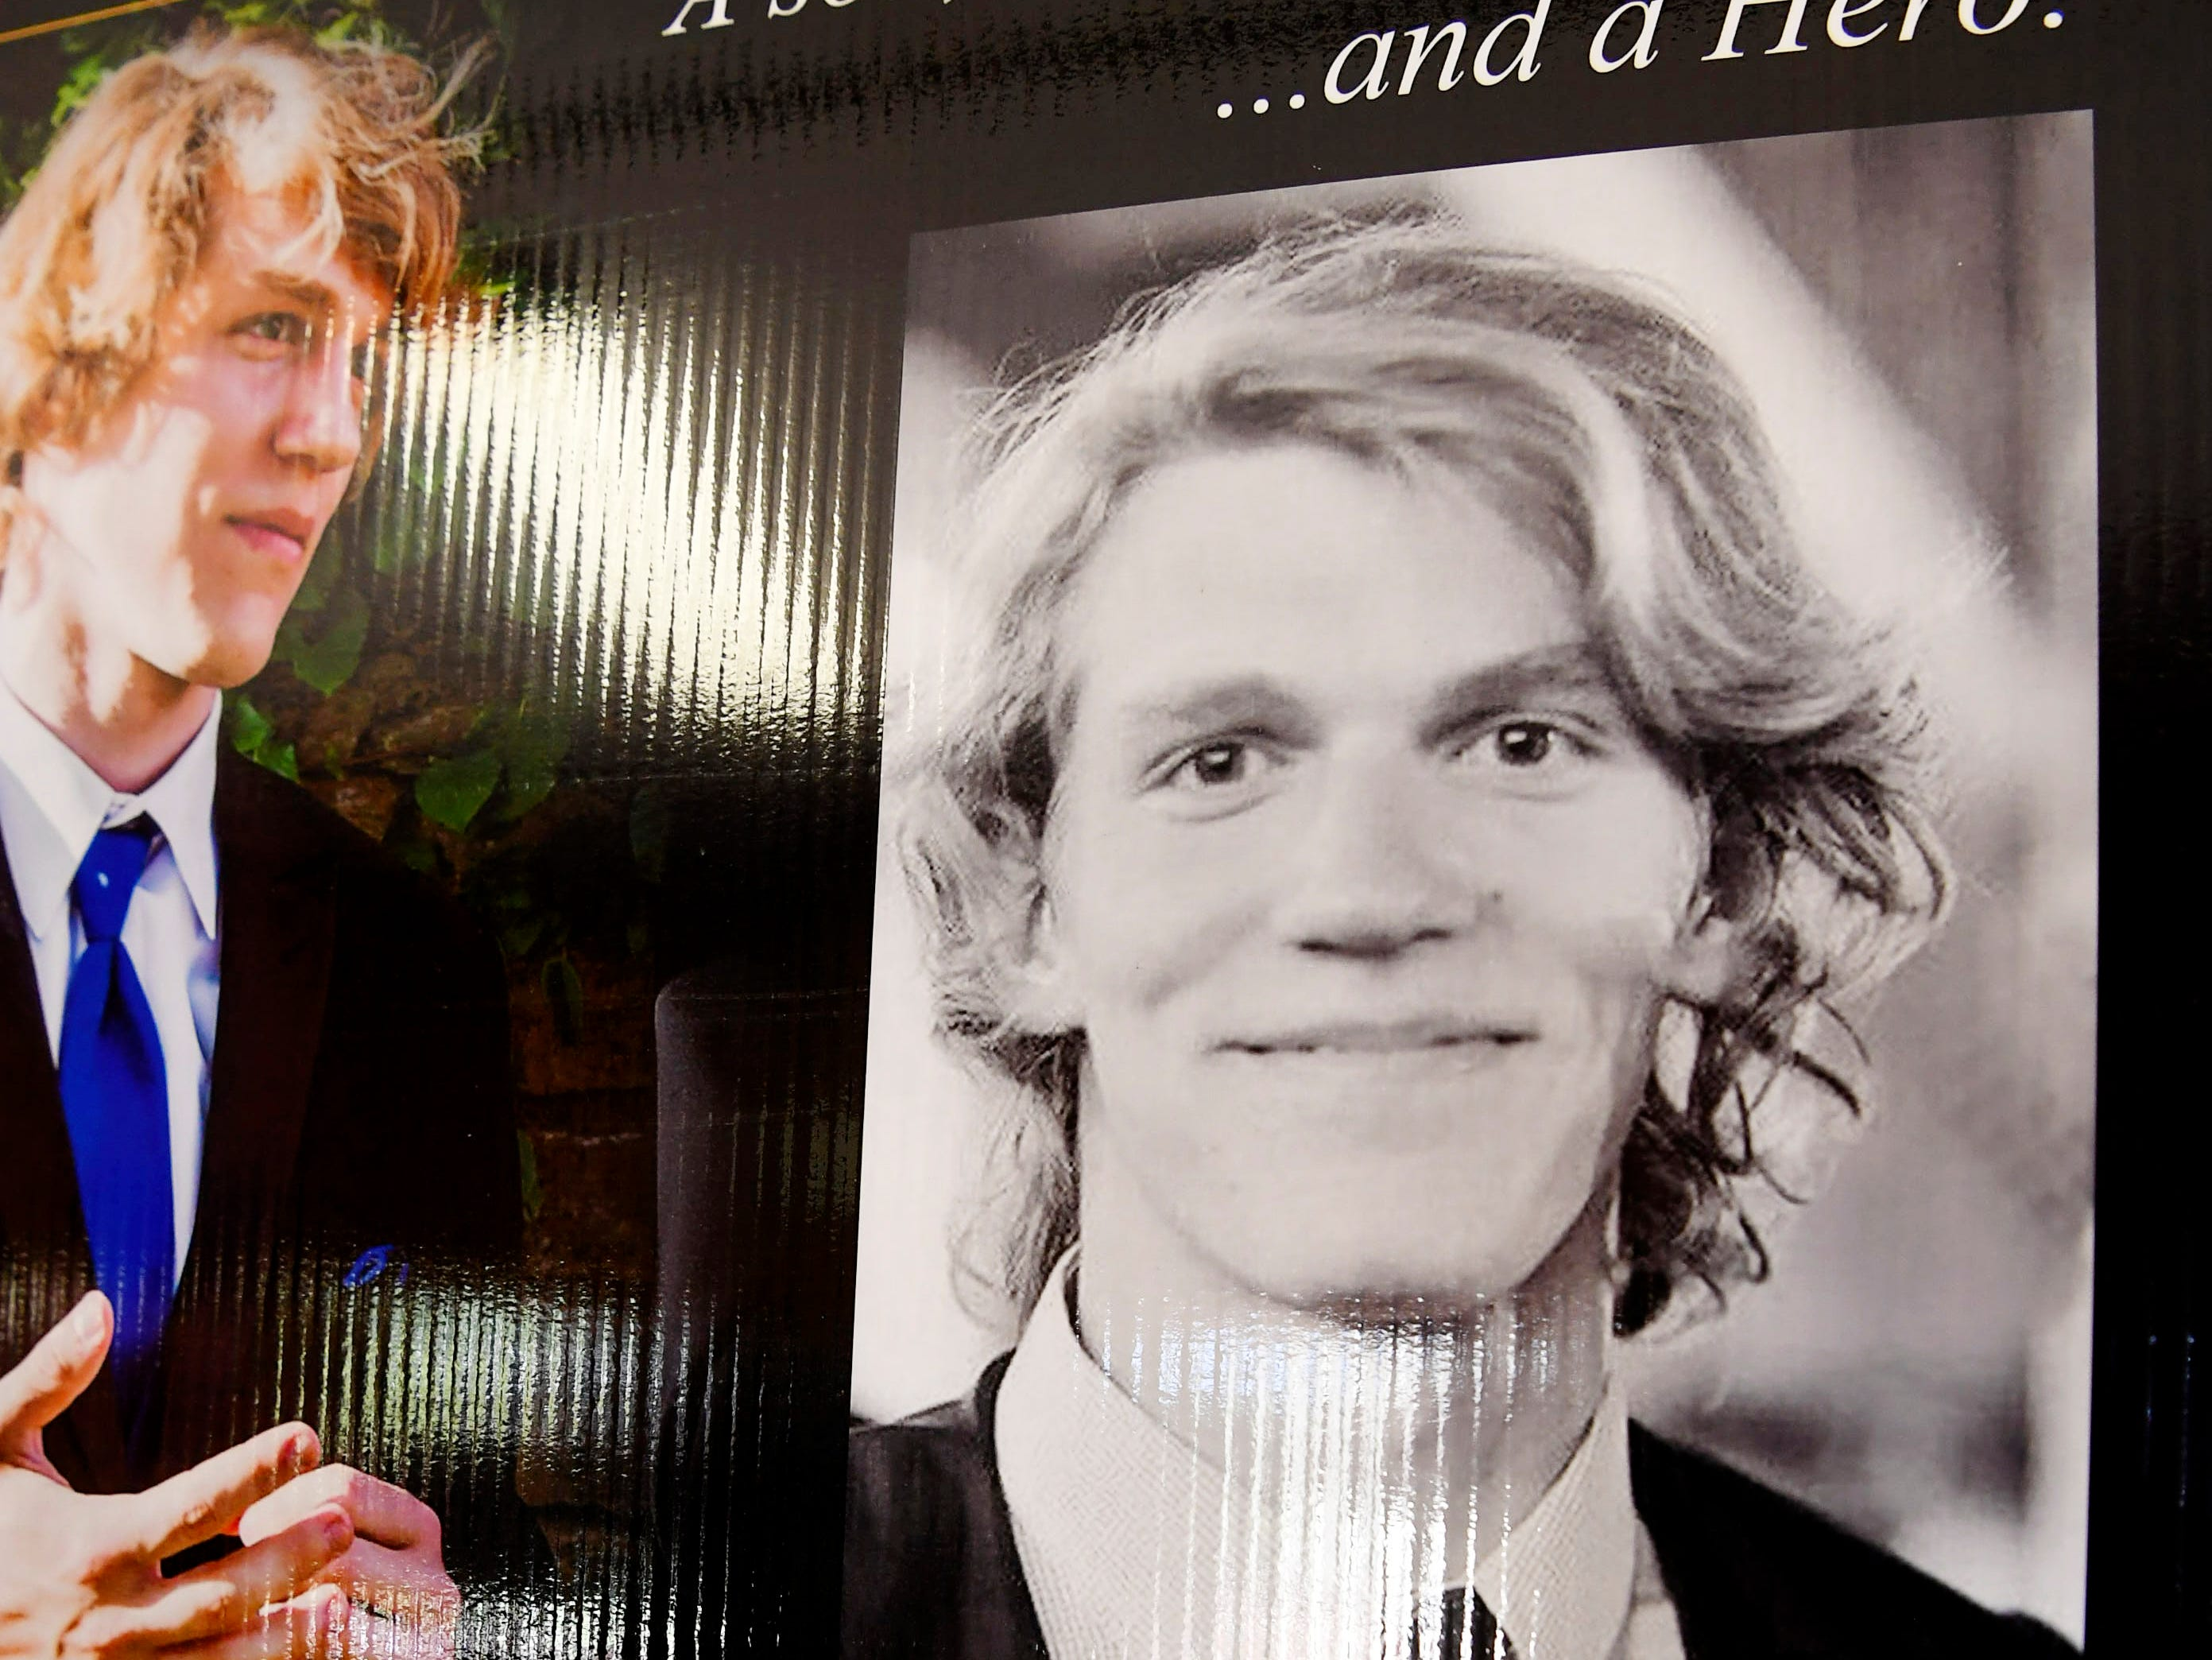 Photographs of Riley Howell at his funeral service at Stuart Auditorium in Lake Junaluska May 5, 2019.